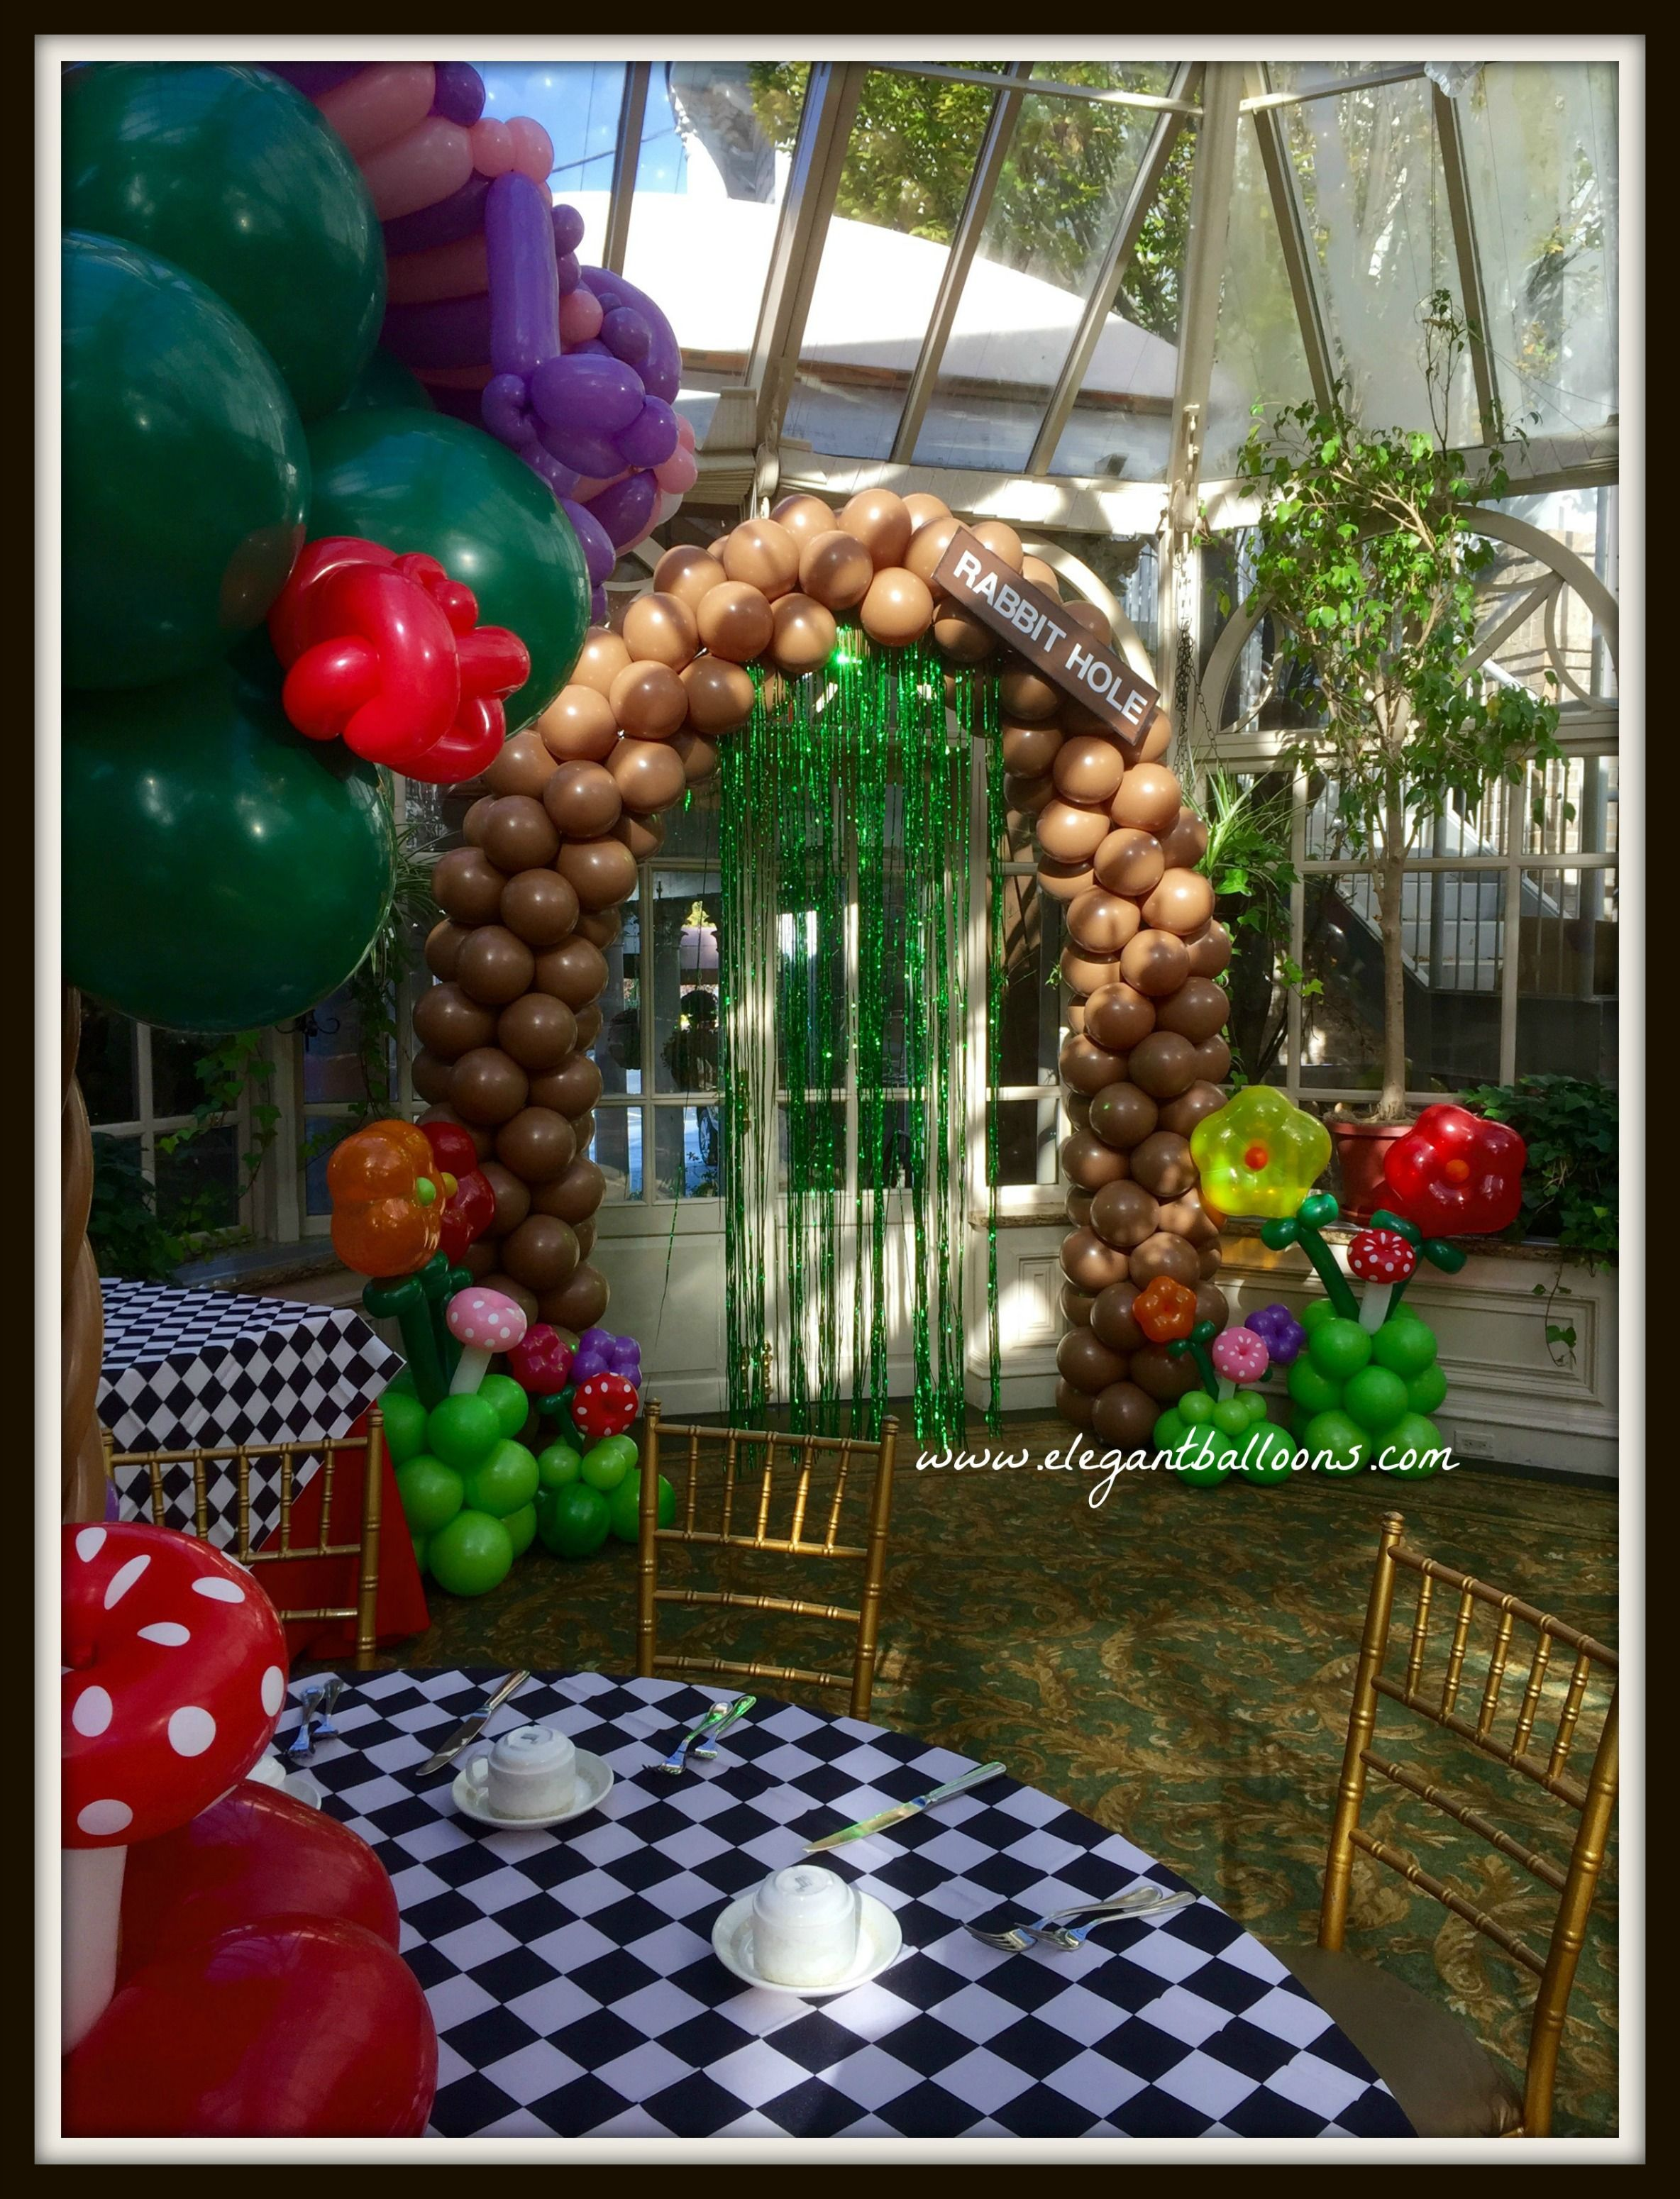 Alice In Wonderland Rabbit Hole Garden Party Arch #Aliceinwonderland #Elegantballoons